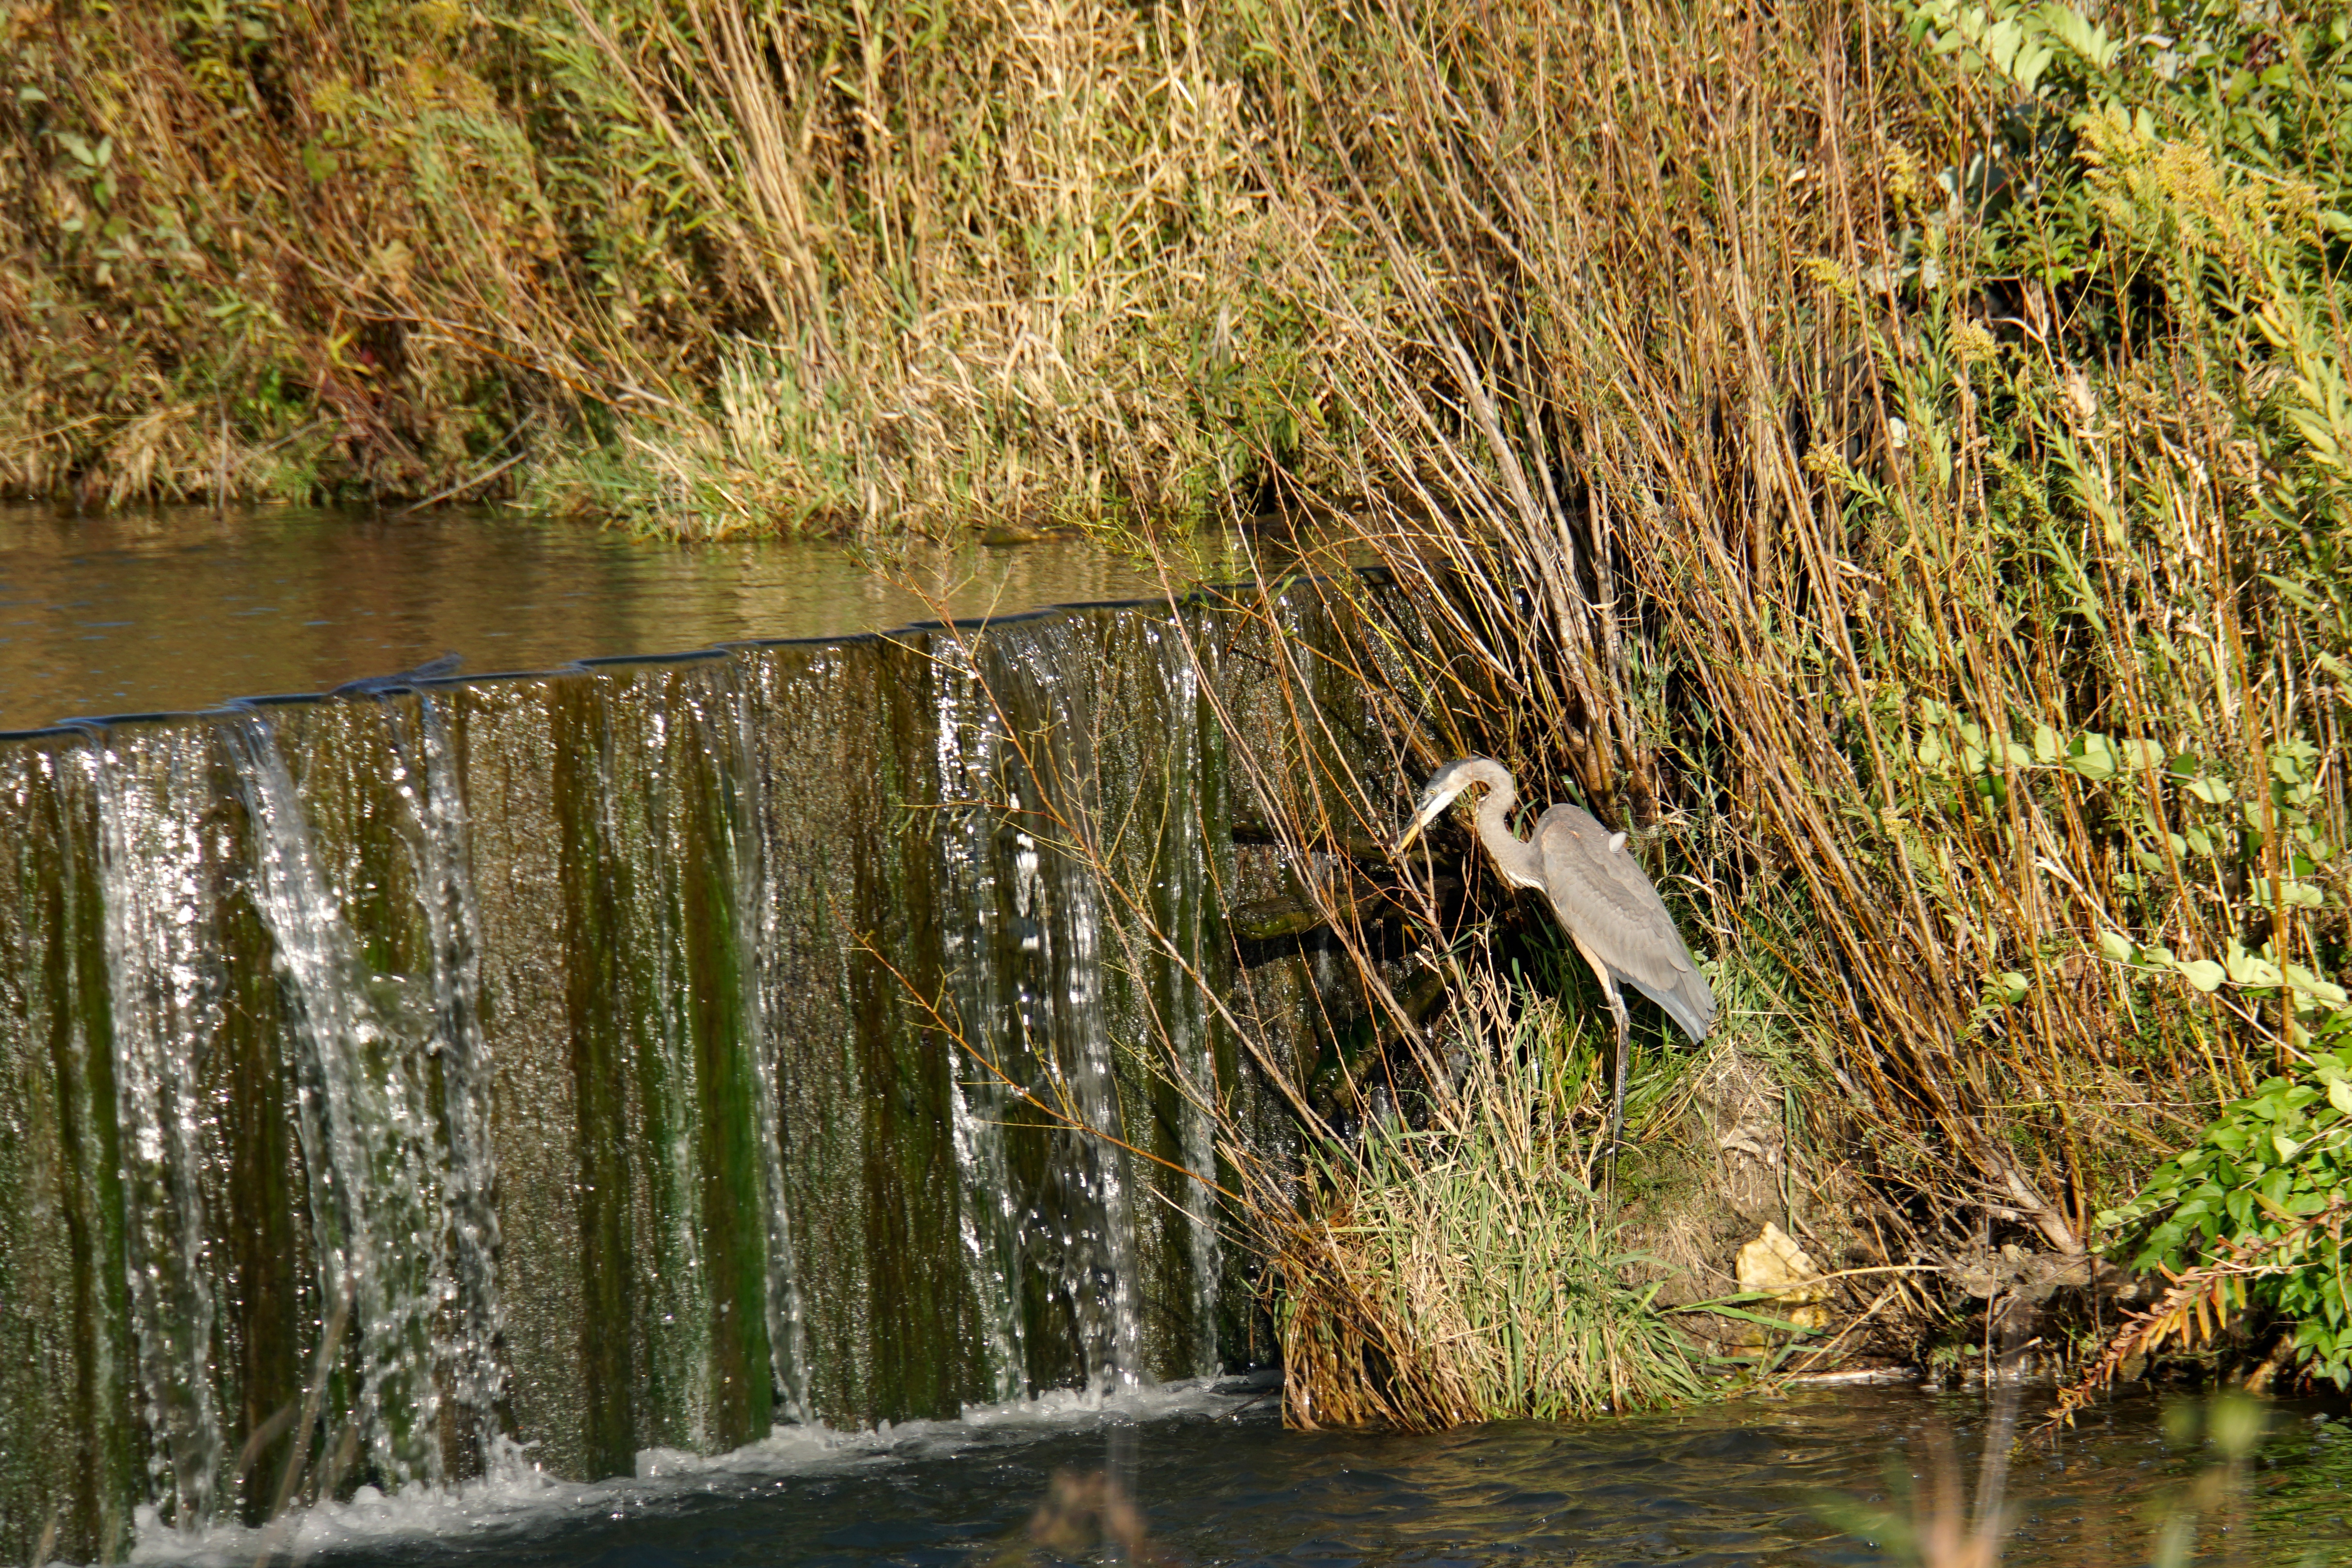 (1/3) Walking on Main Ring Road on a lovely fall day, the photographer saw several birds. A great blue heron sits by the waterfall. nature, wildlife, animal, bird, great blue heron, heron Photo: Marguerite Tonjes